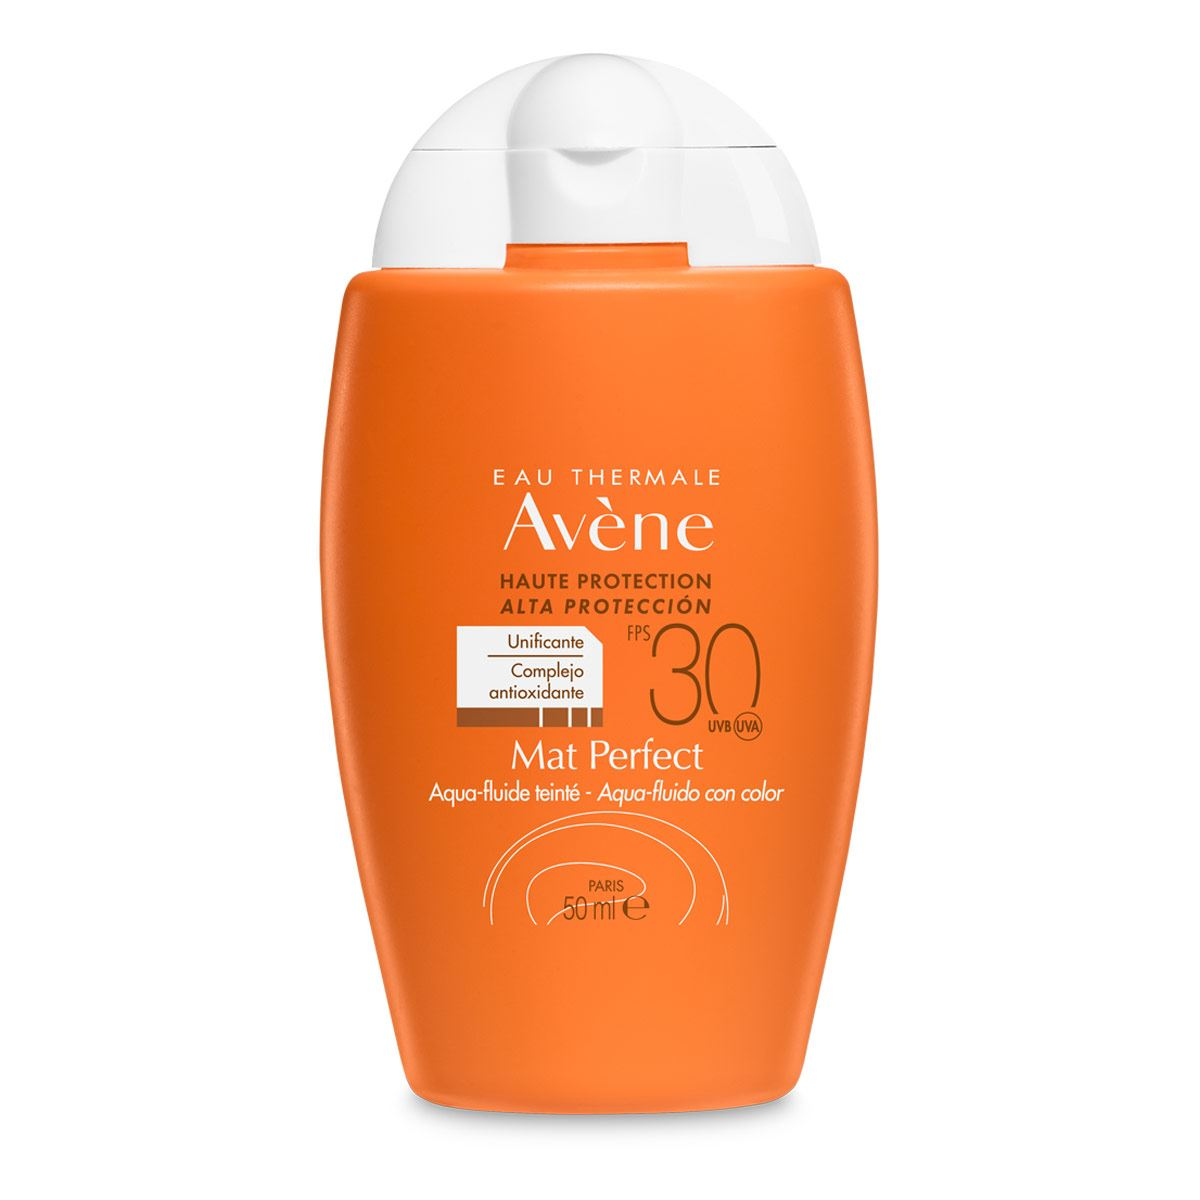 Aqua-fluido matificante / antioxidante con fps 30+ con color de 50 ml de avene  - Sanborns